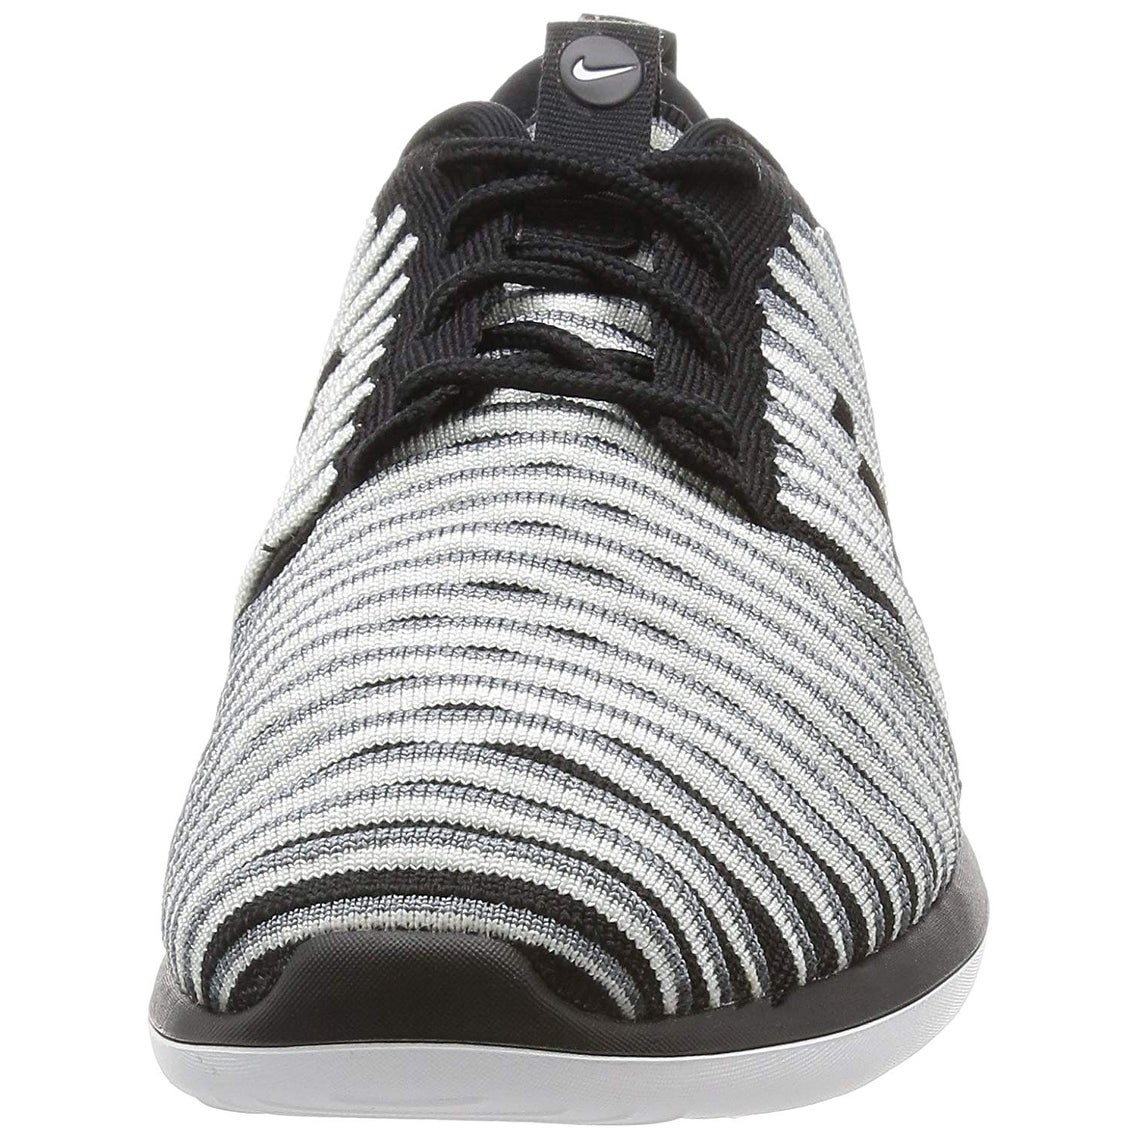 promo code fbe11 50af3 Shop Nike Womens Roshe Two Flyknit Fabric Low Top Lace Up Running Sneaker -  Free Shipping Today - Overstock - 25893339